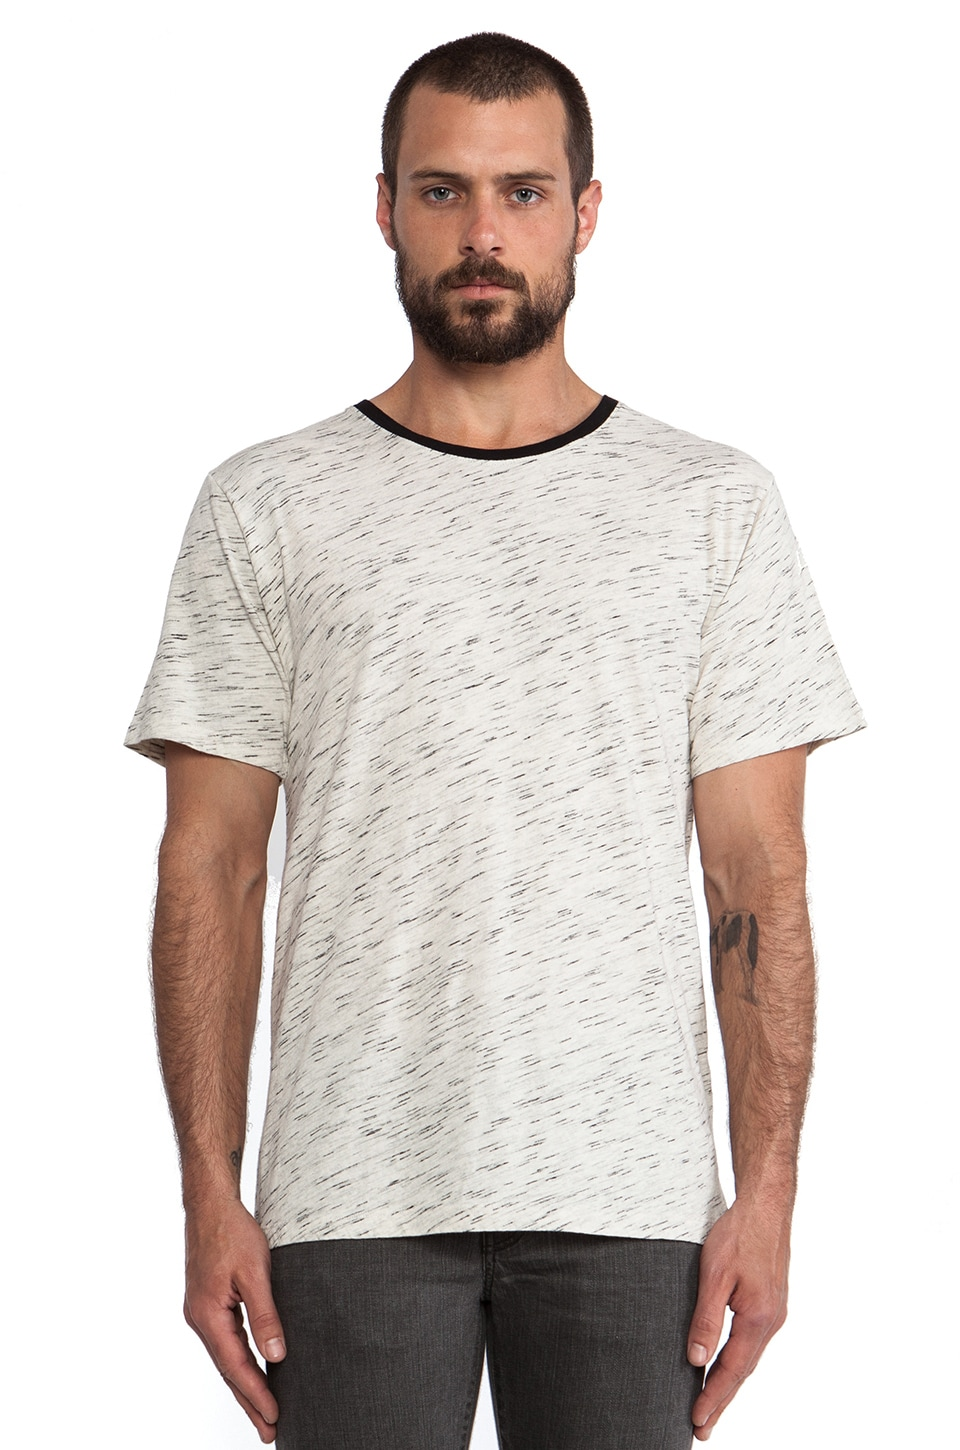 IRO Leo T-Shirt in Mixed Ecru